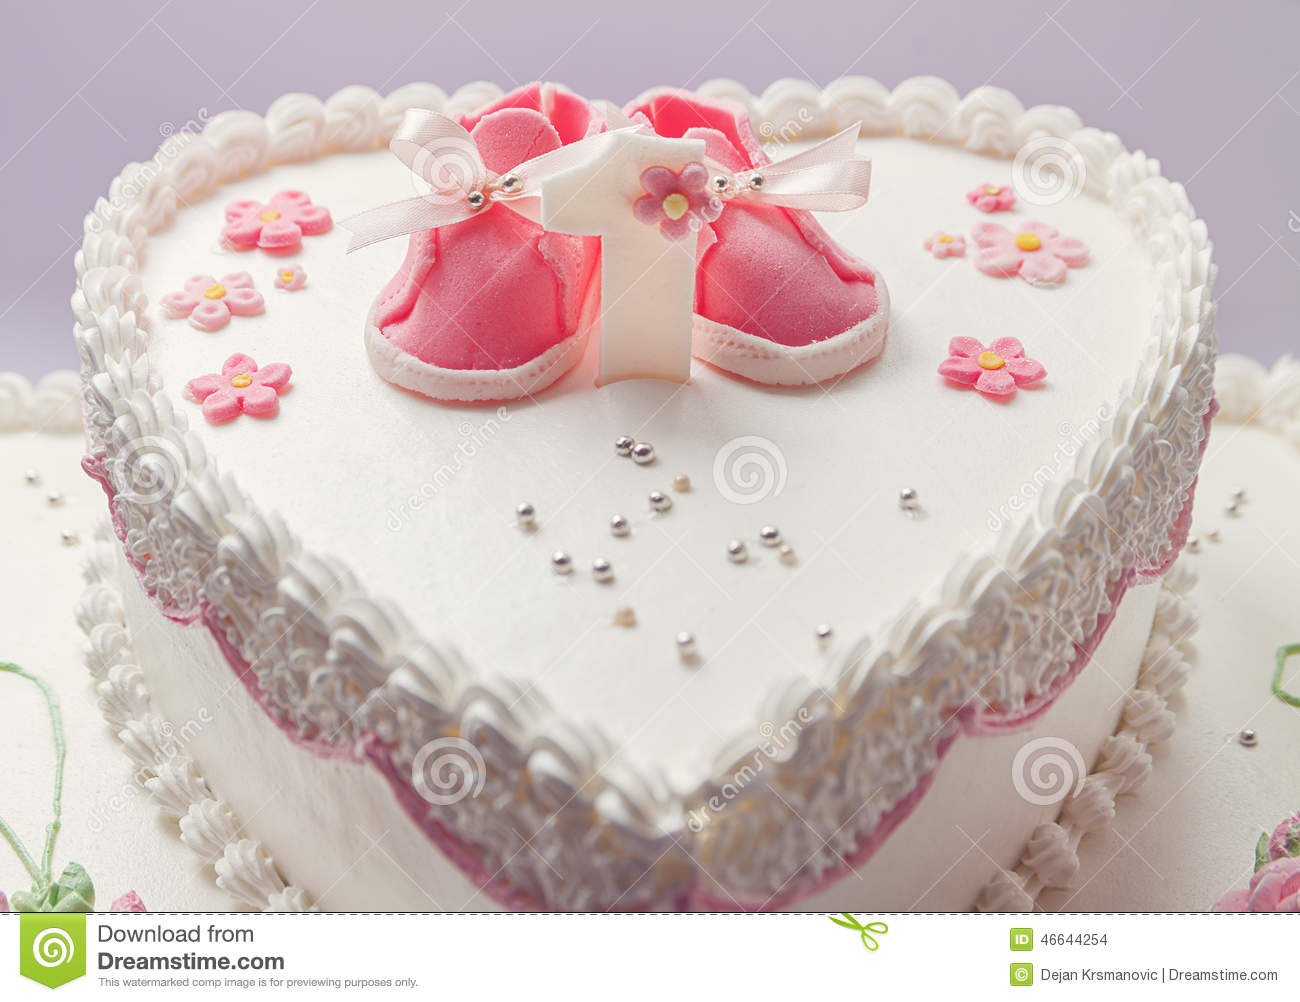 Details Of A Birthday Cake For Baby Girl Number One And Sweet Sugar Shoes On Top